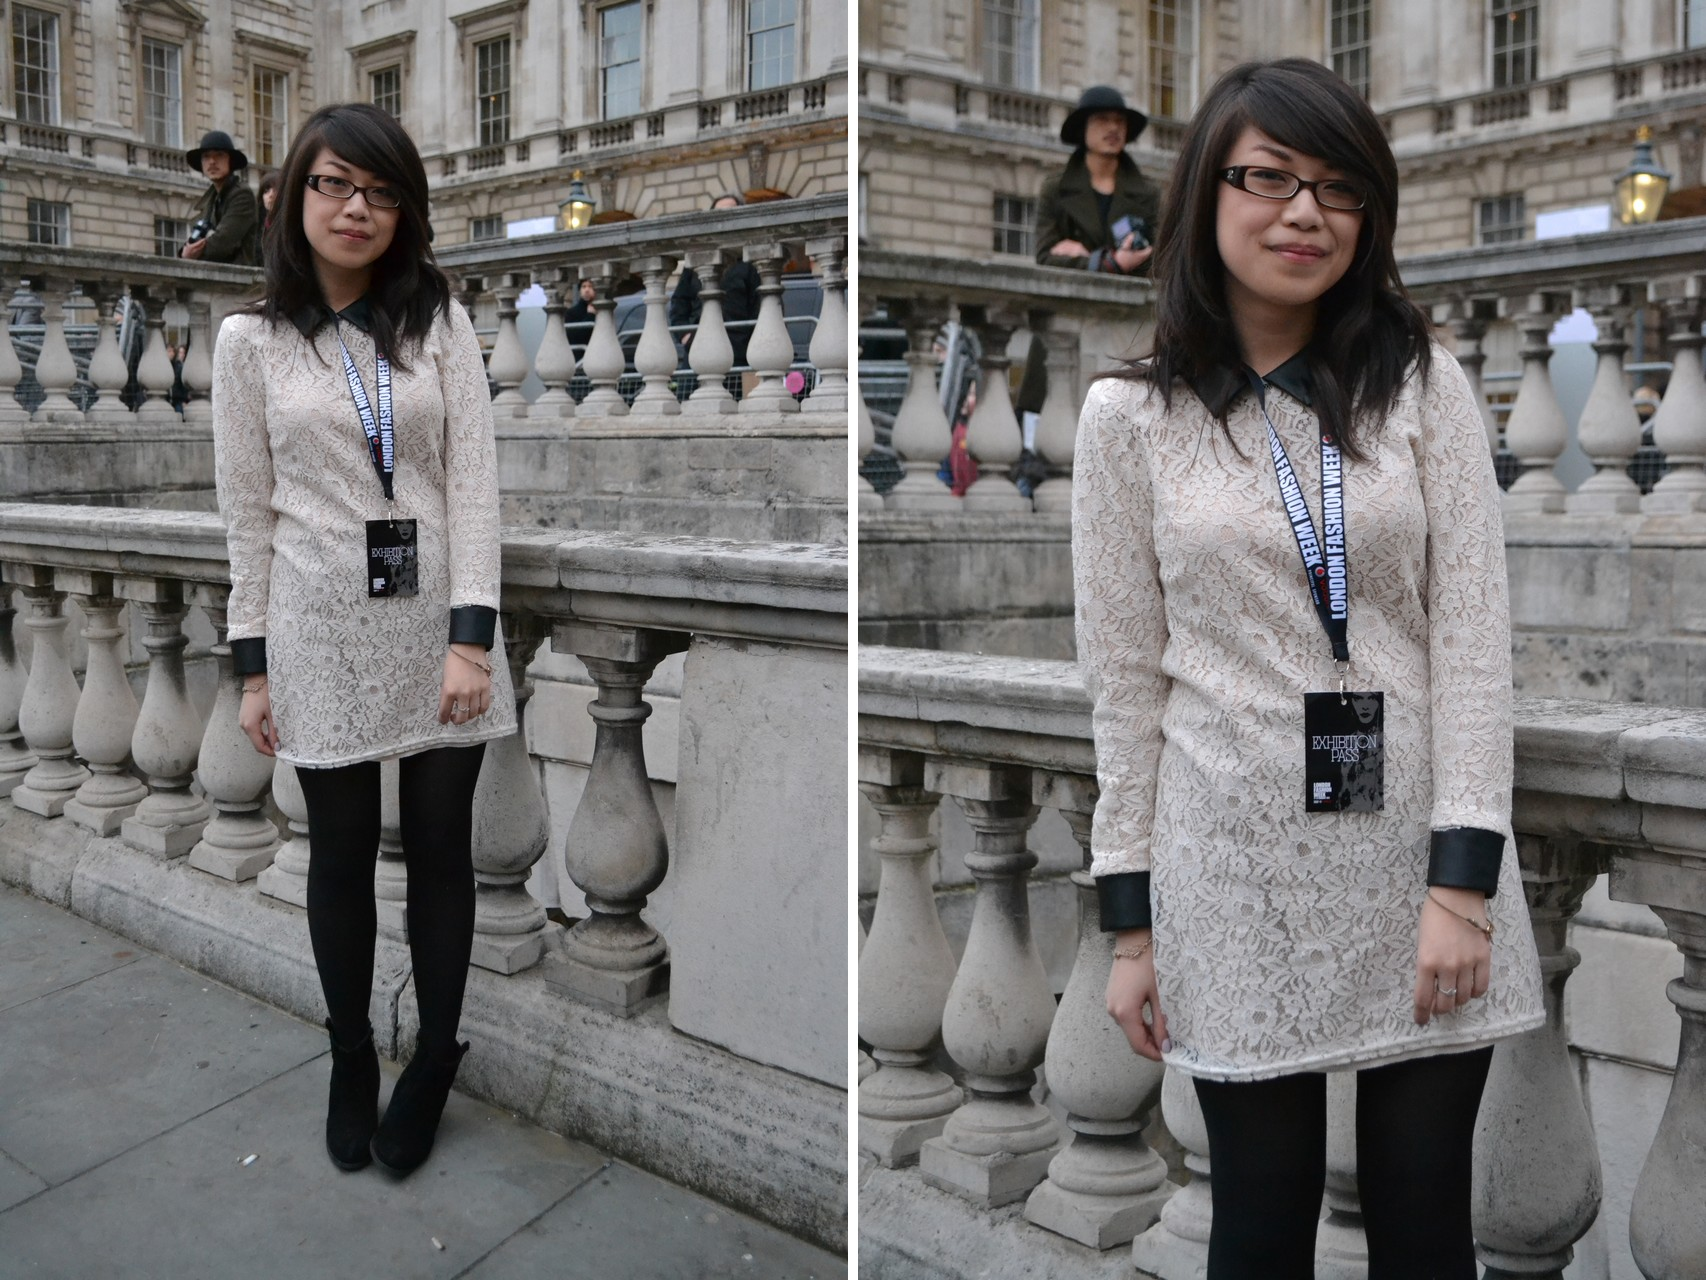 daisybutter - UK Style Blog: london fashion week, aw12, what i wore, monochrome outfits, mulberry alexa